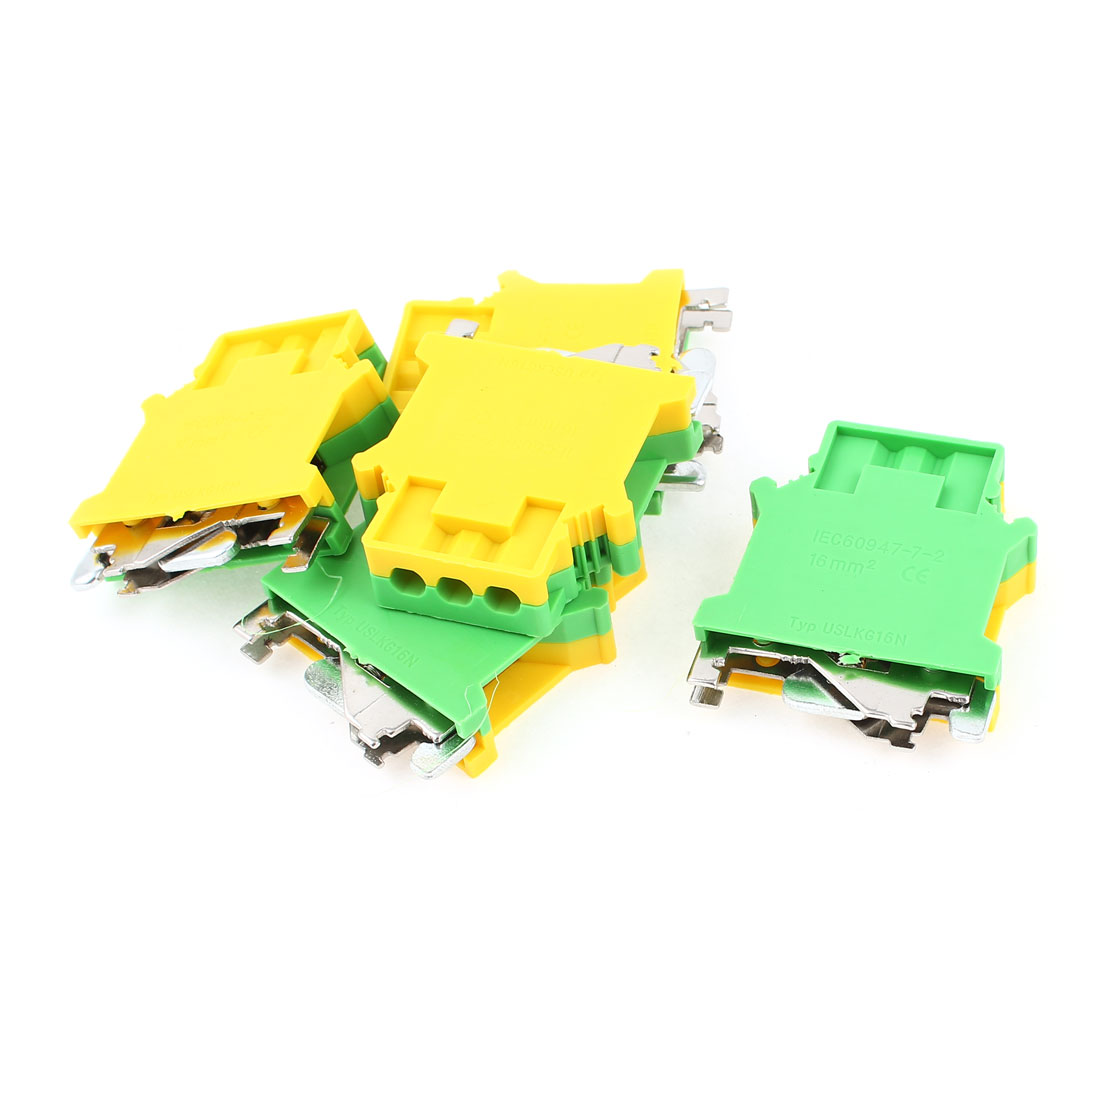 5 Pcs USLKG16N 4-16mm2 Wire Rail Mount Grounding Terminal Block Yellow Green